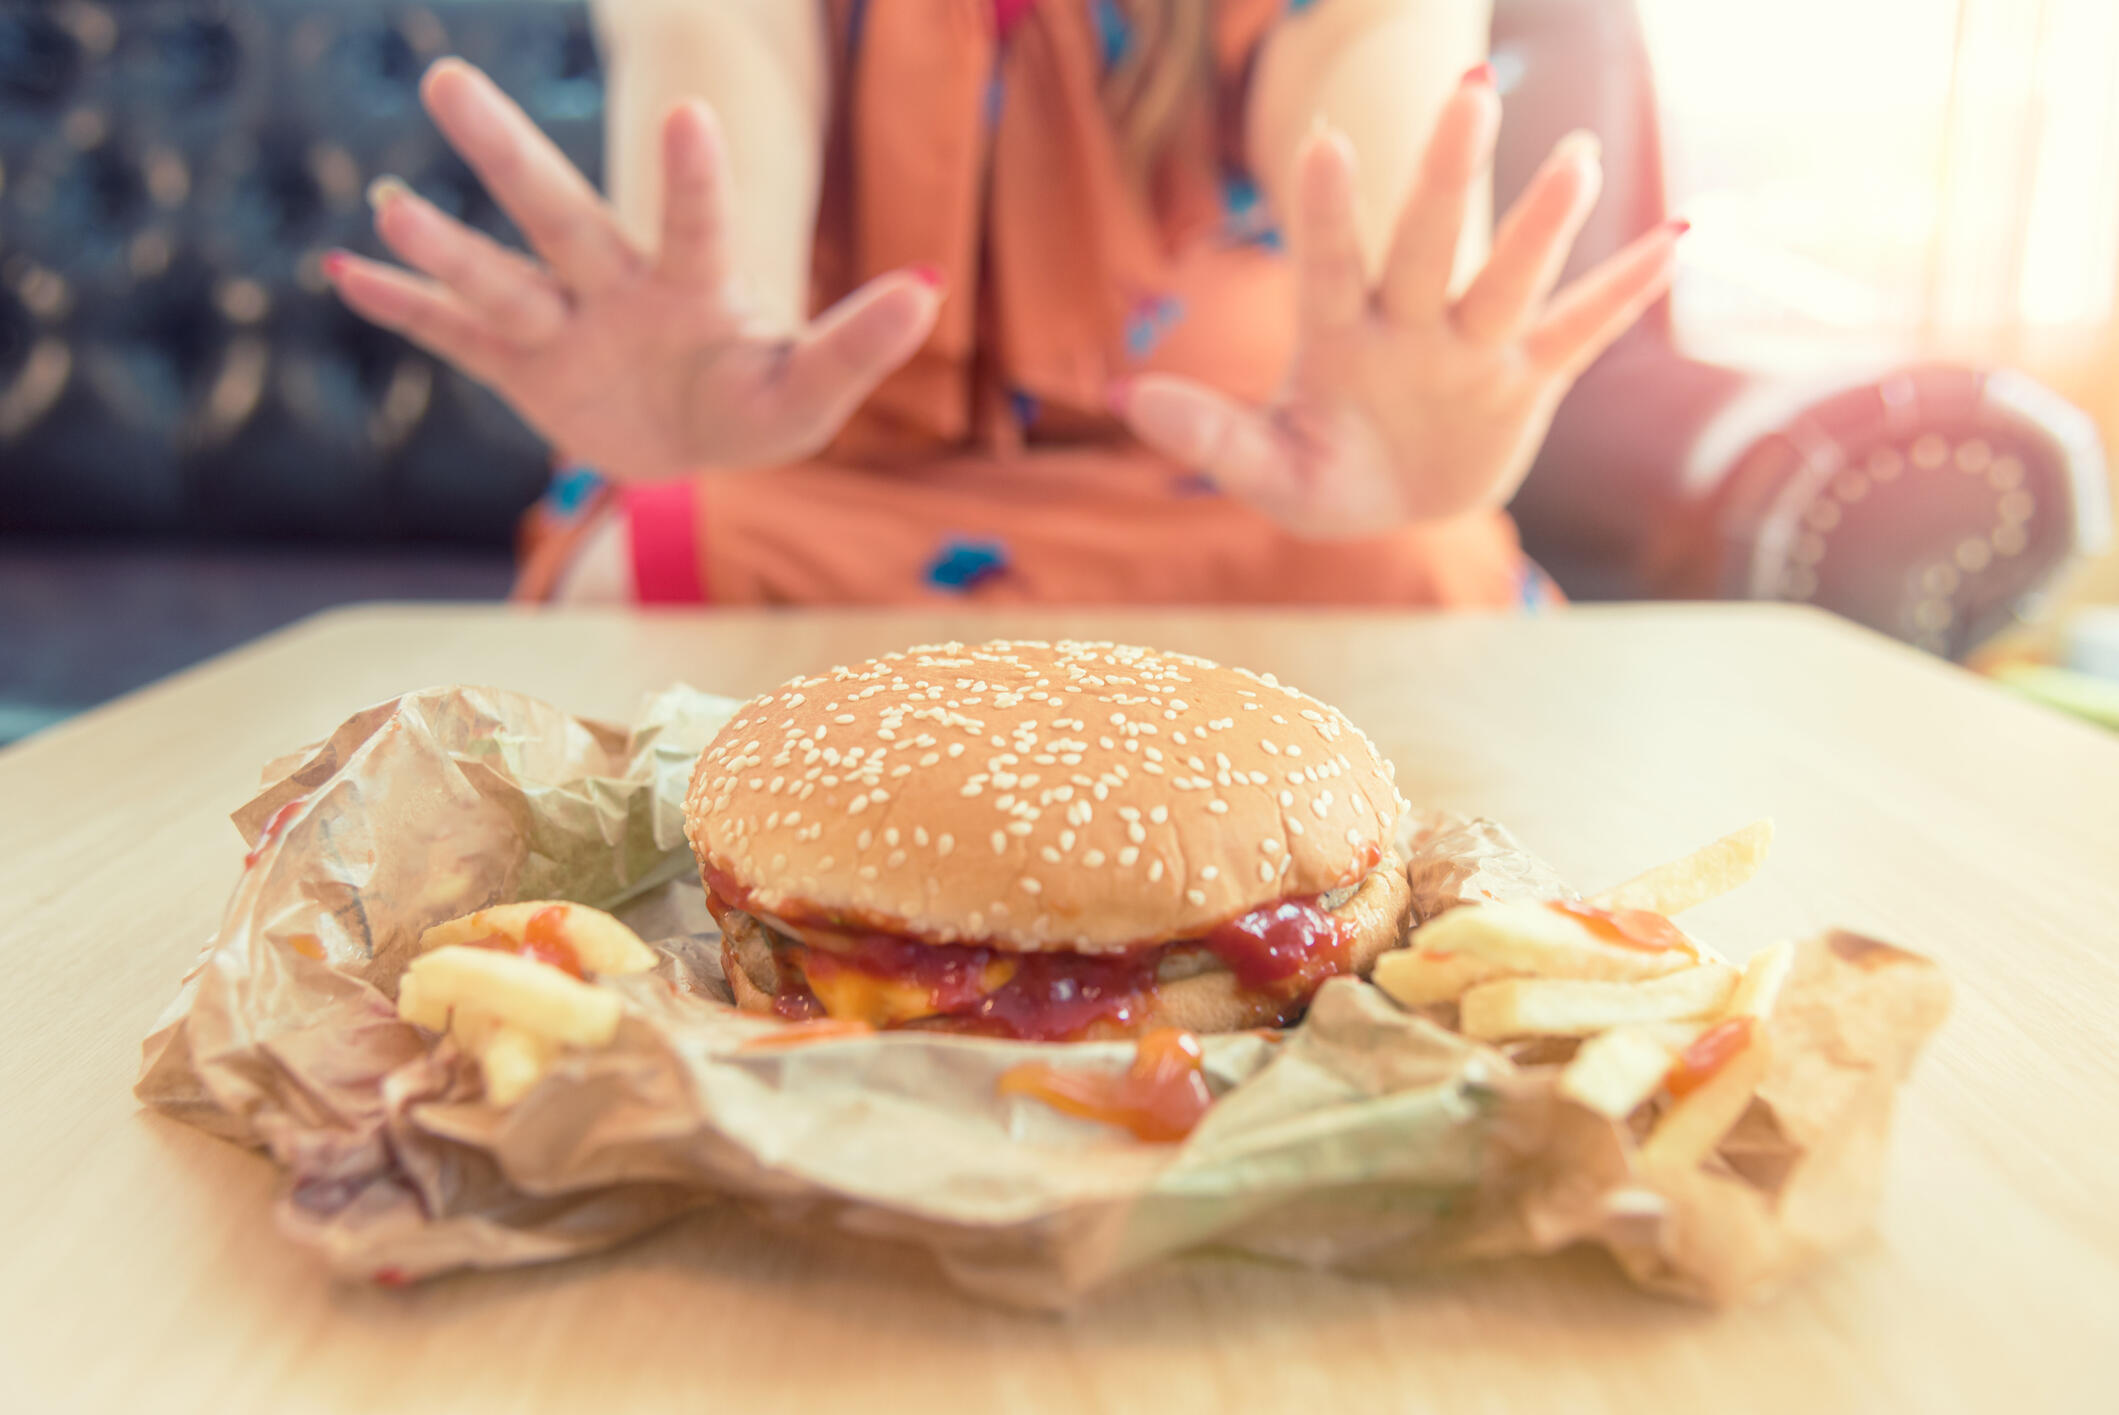 close up of hands woman refusing a cheeseburger on a diet